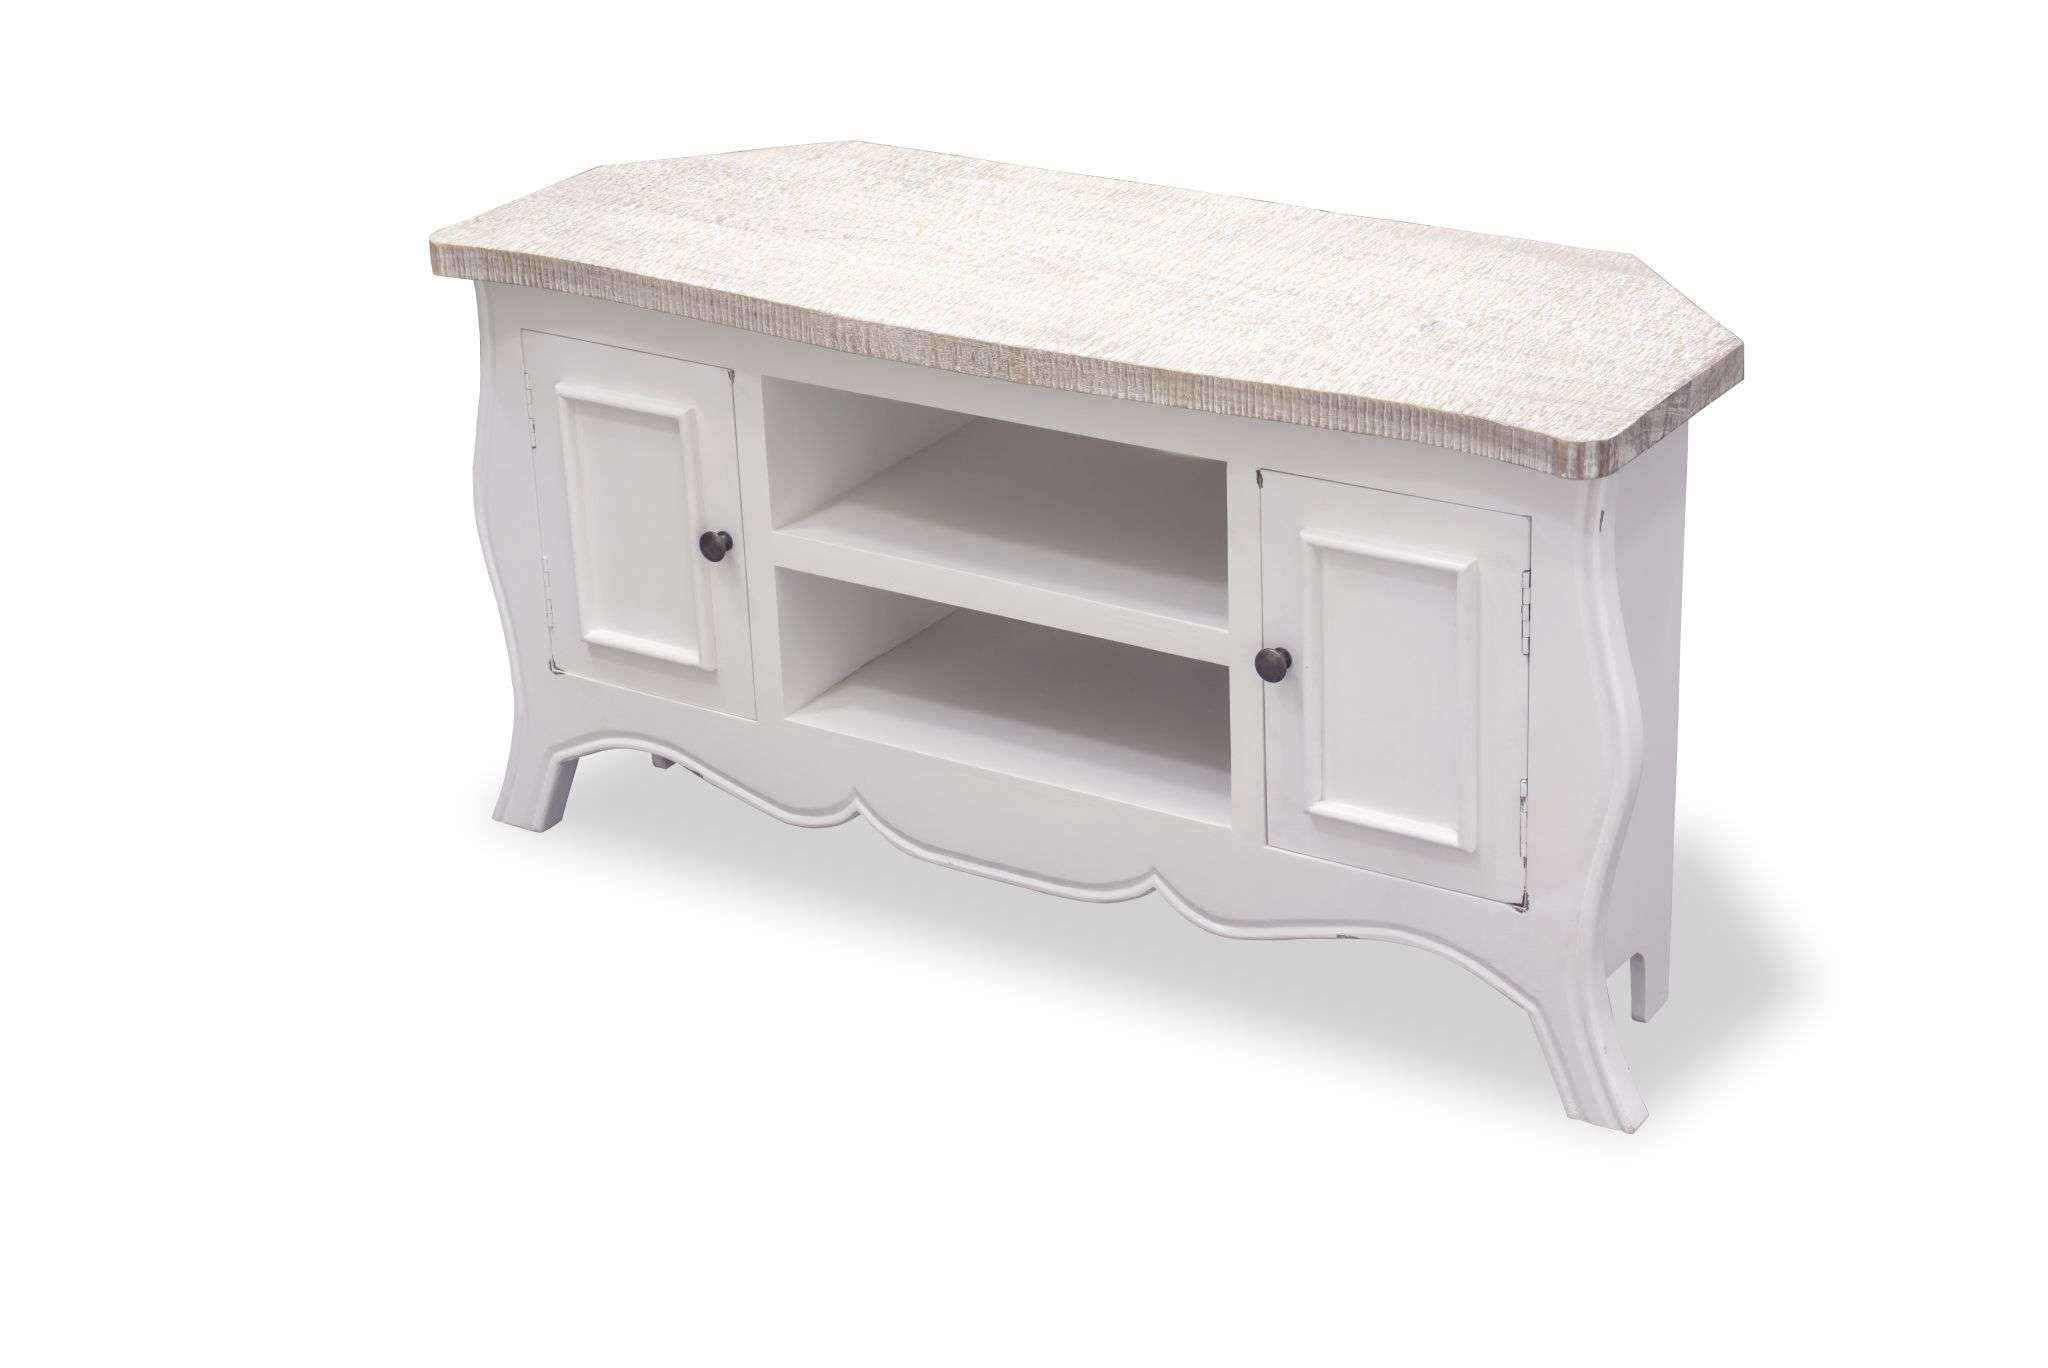 Painted Cottonwood Shabby Chic Corner Tv Cabinet 45570 P (2048 Intended For White Corner Tv Cabinets (View 17 of 20)